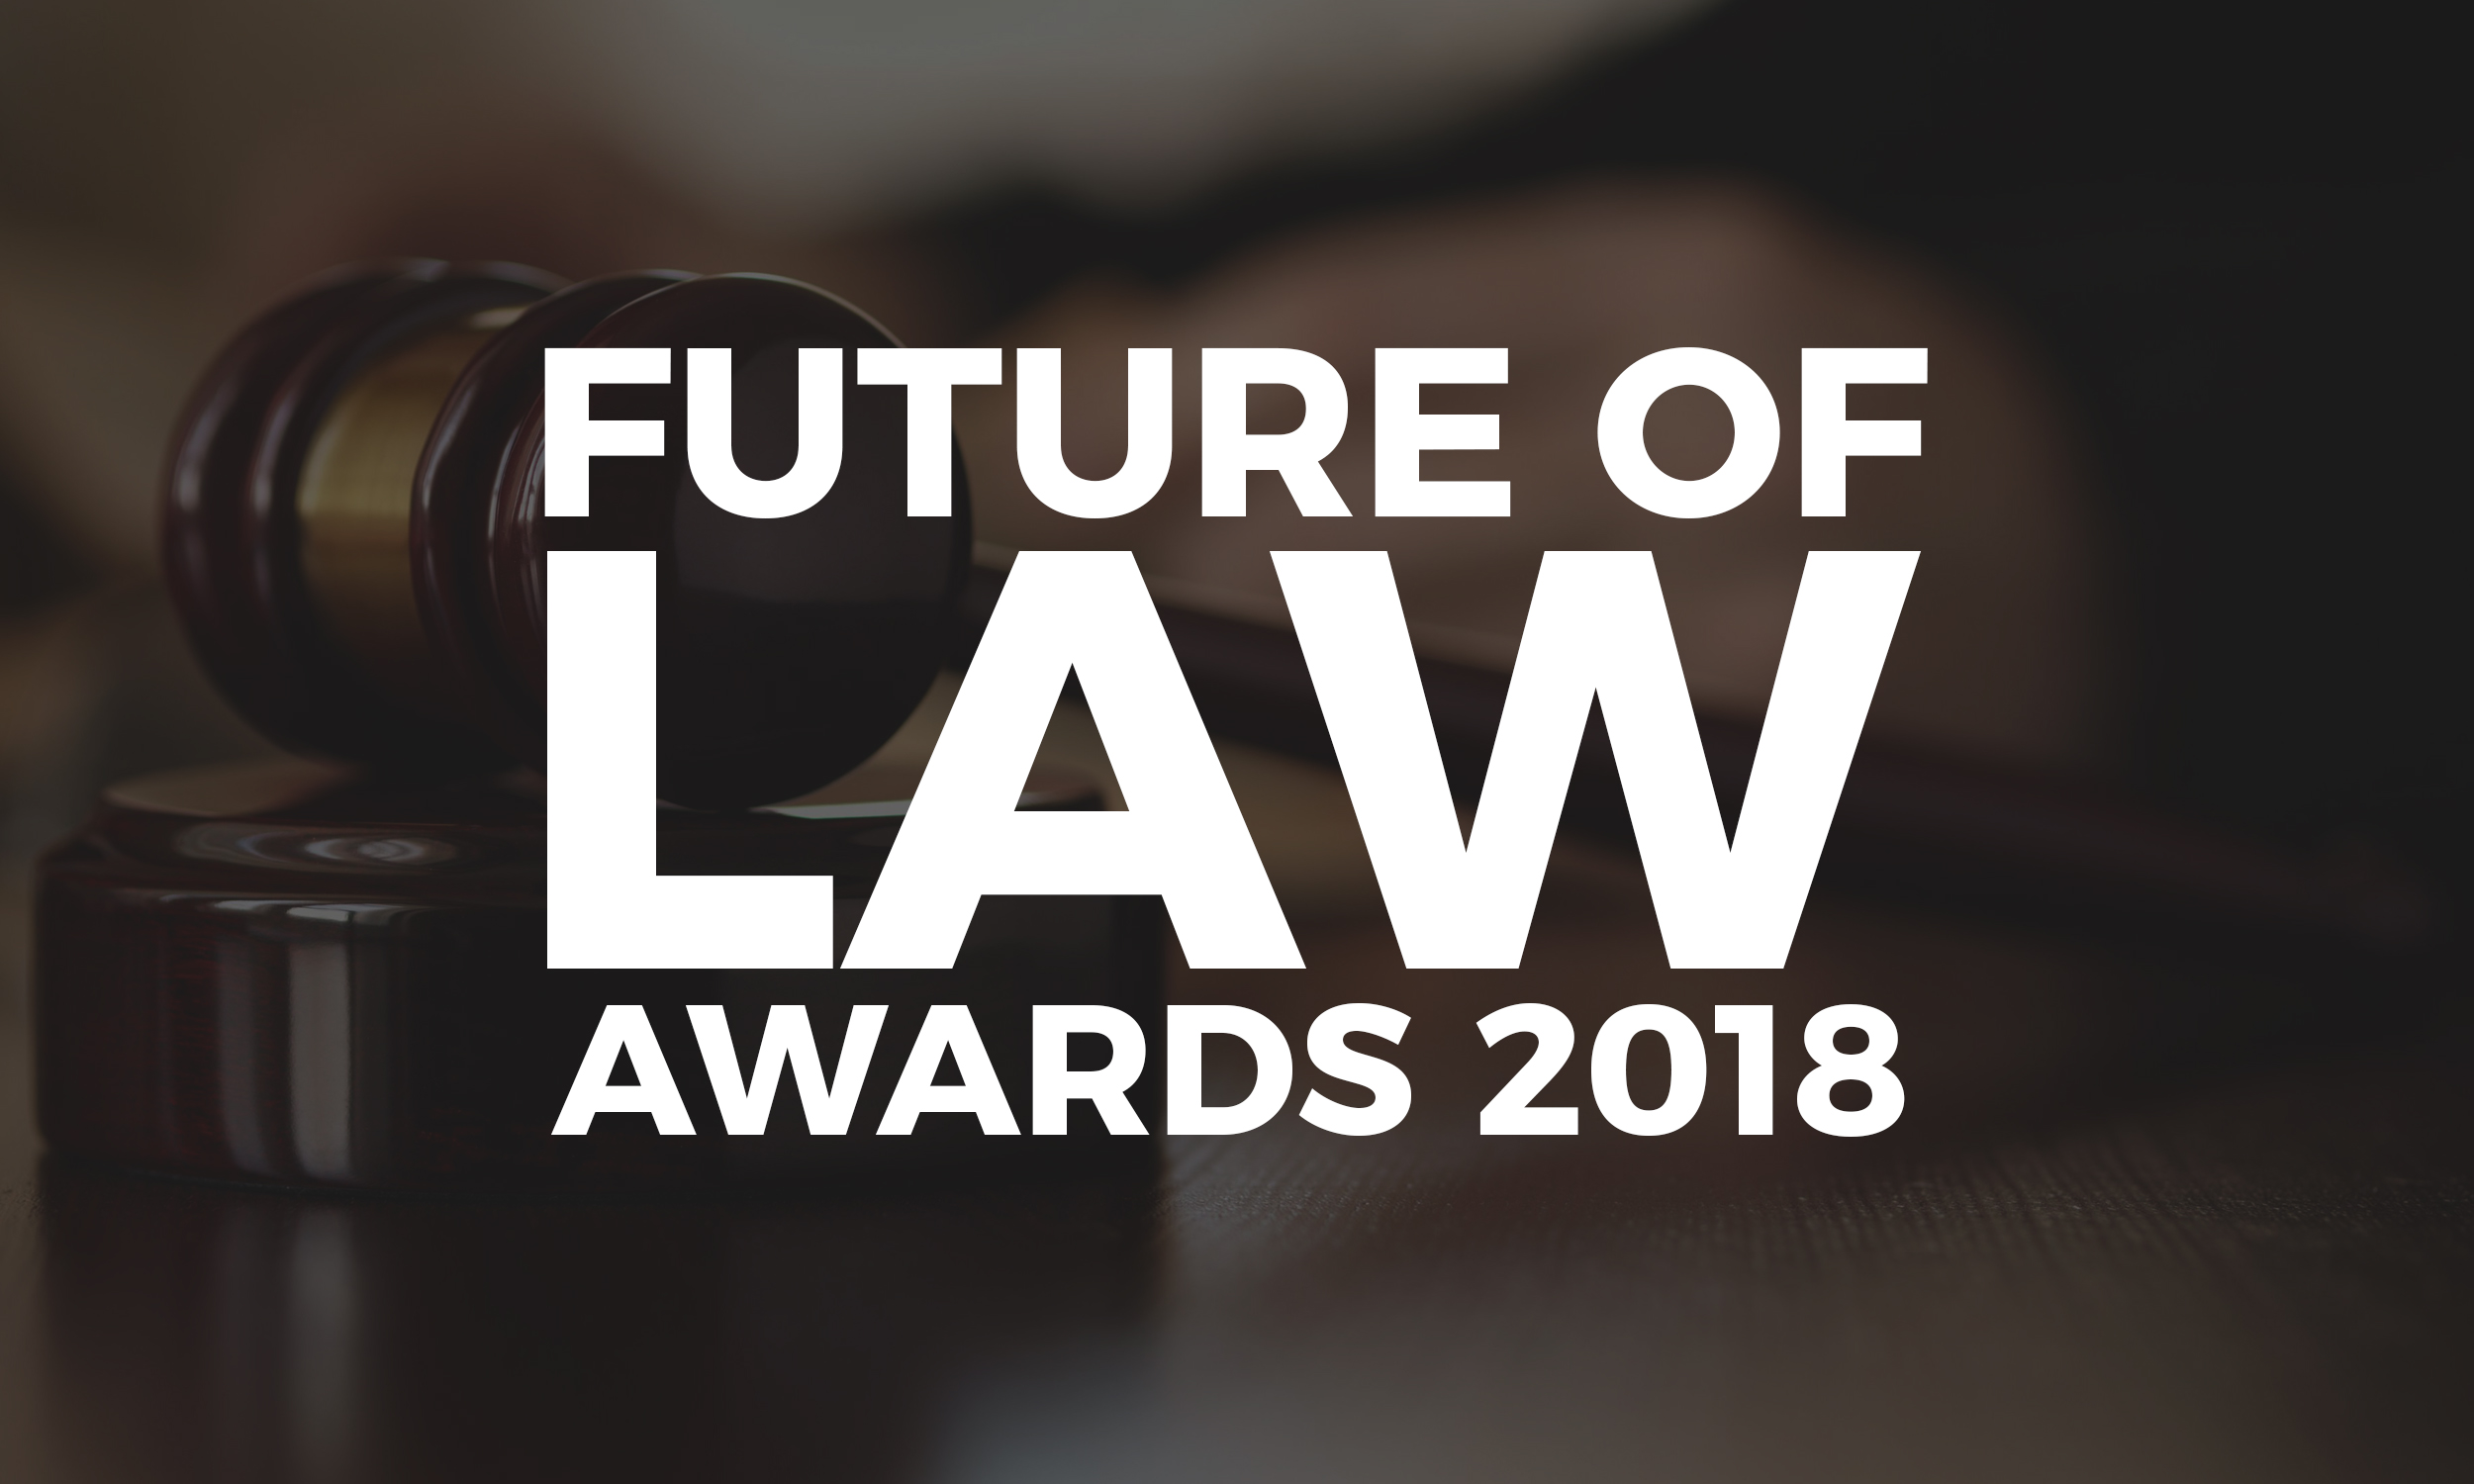 UniCourt CEO Josh Blandi Receives Future of Law Award